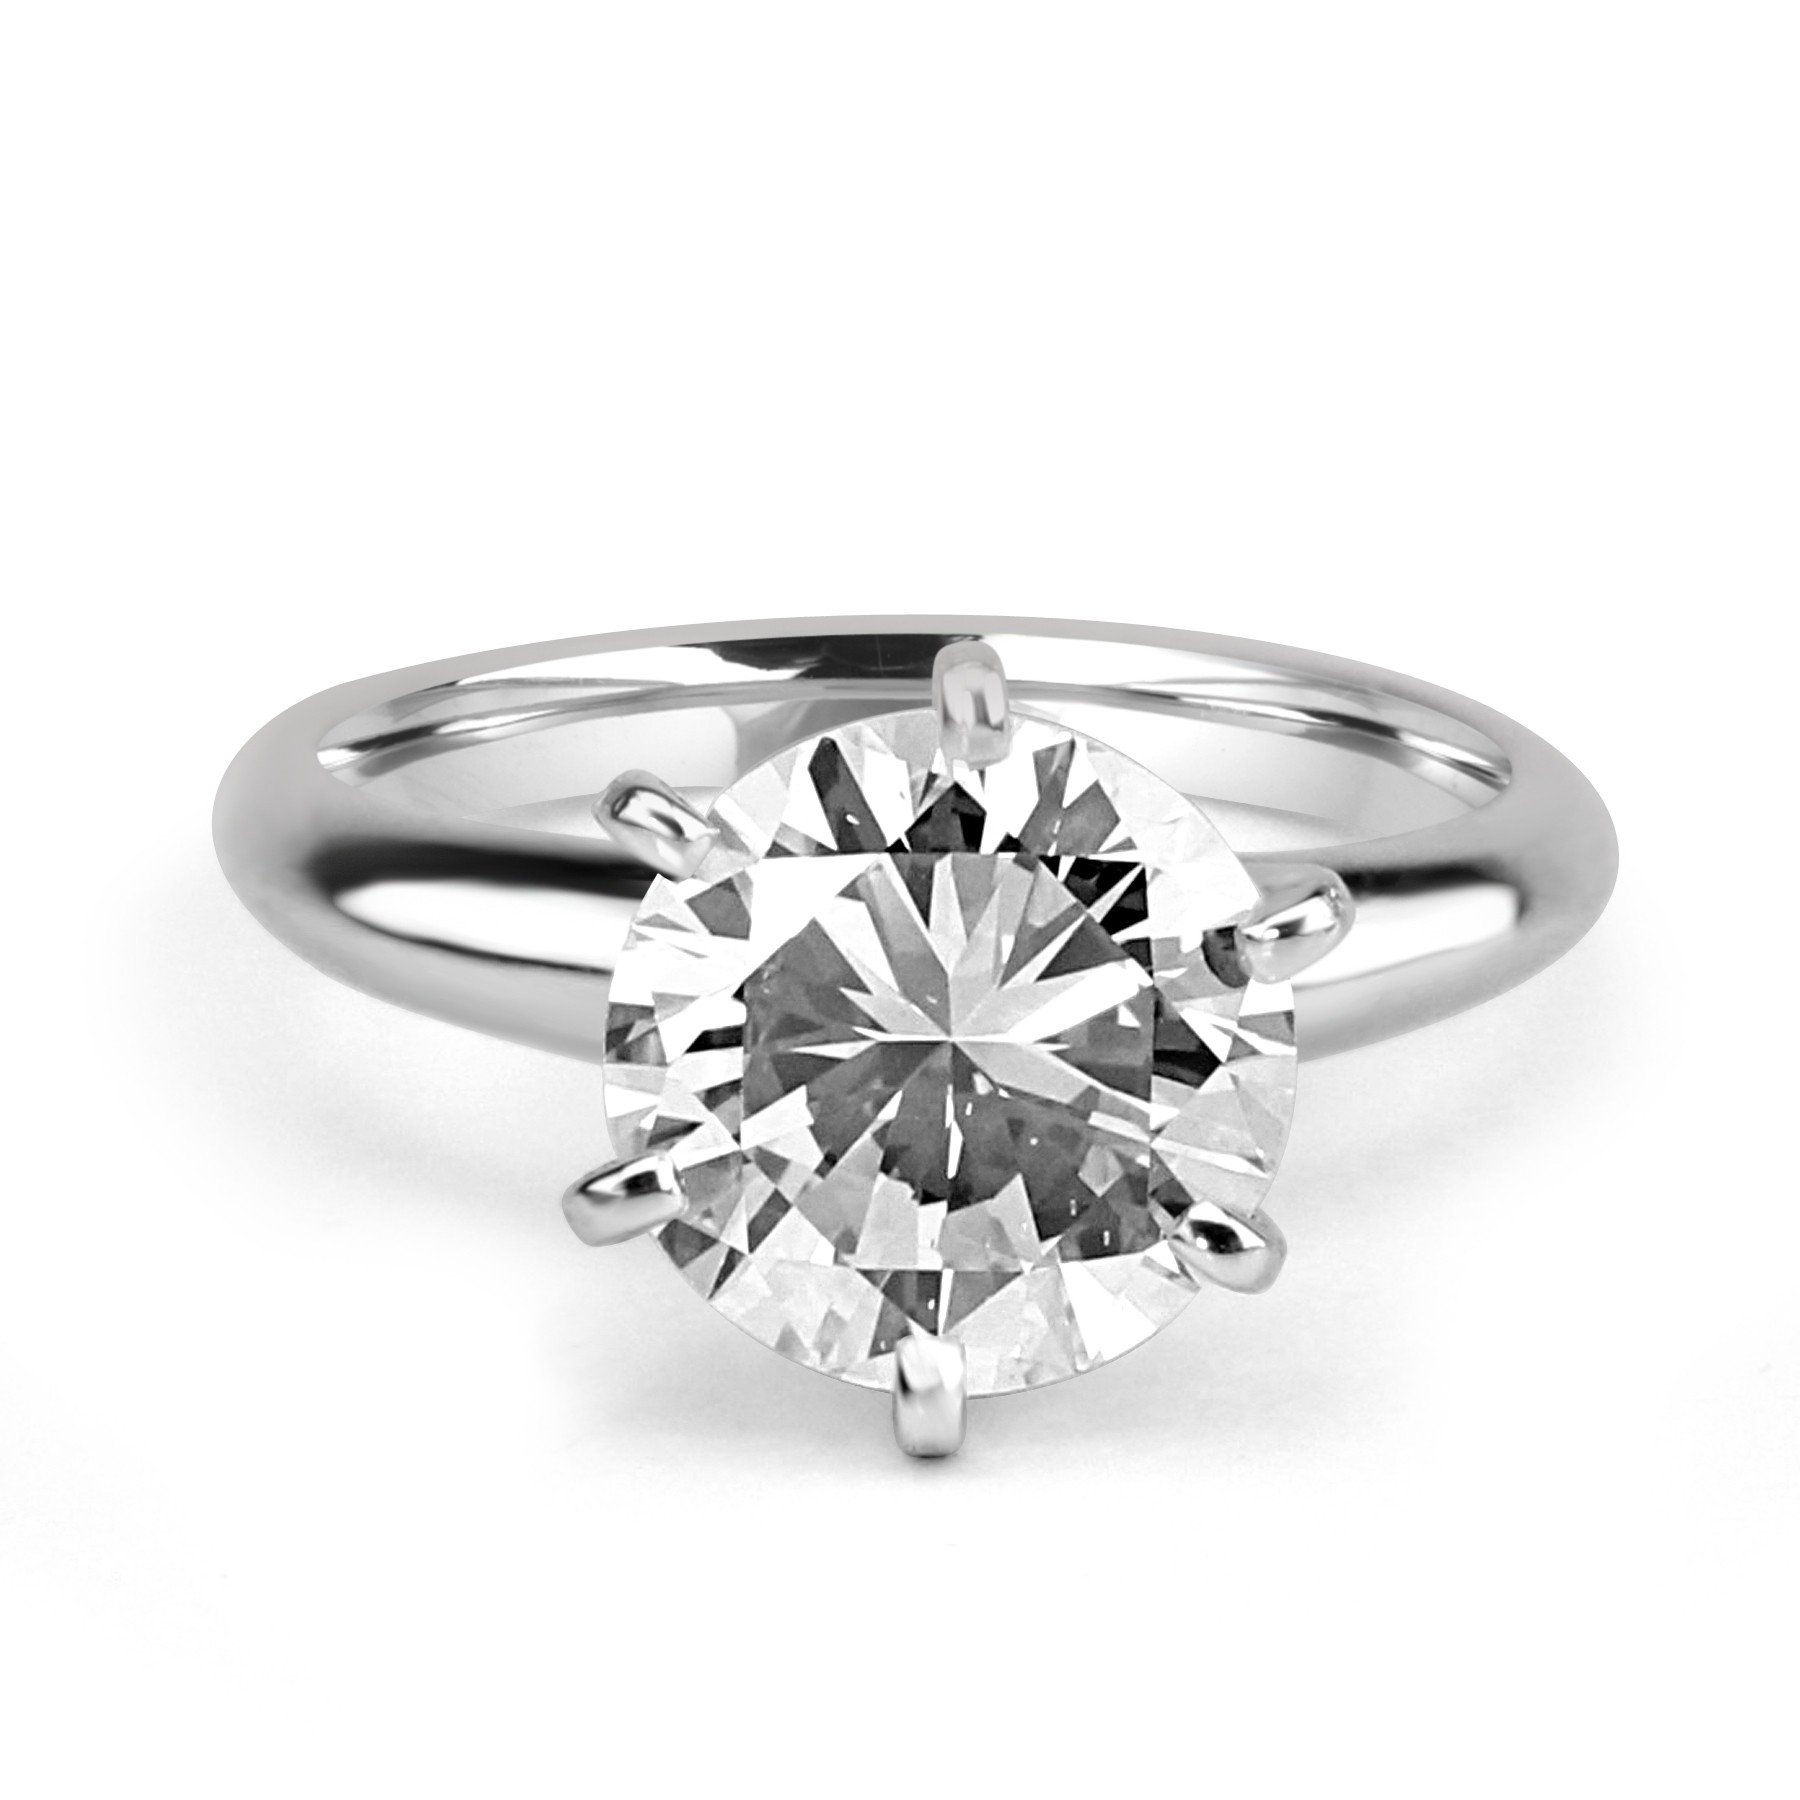 14k W/G Round-Cut Diamond Solitaire Engagement Ring